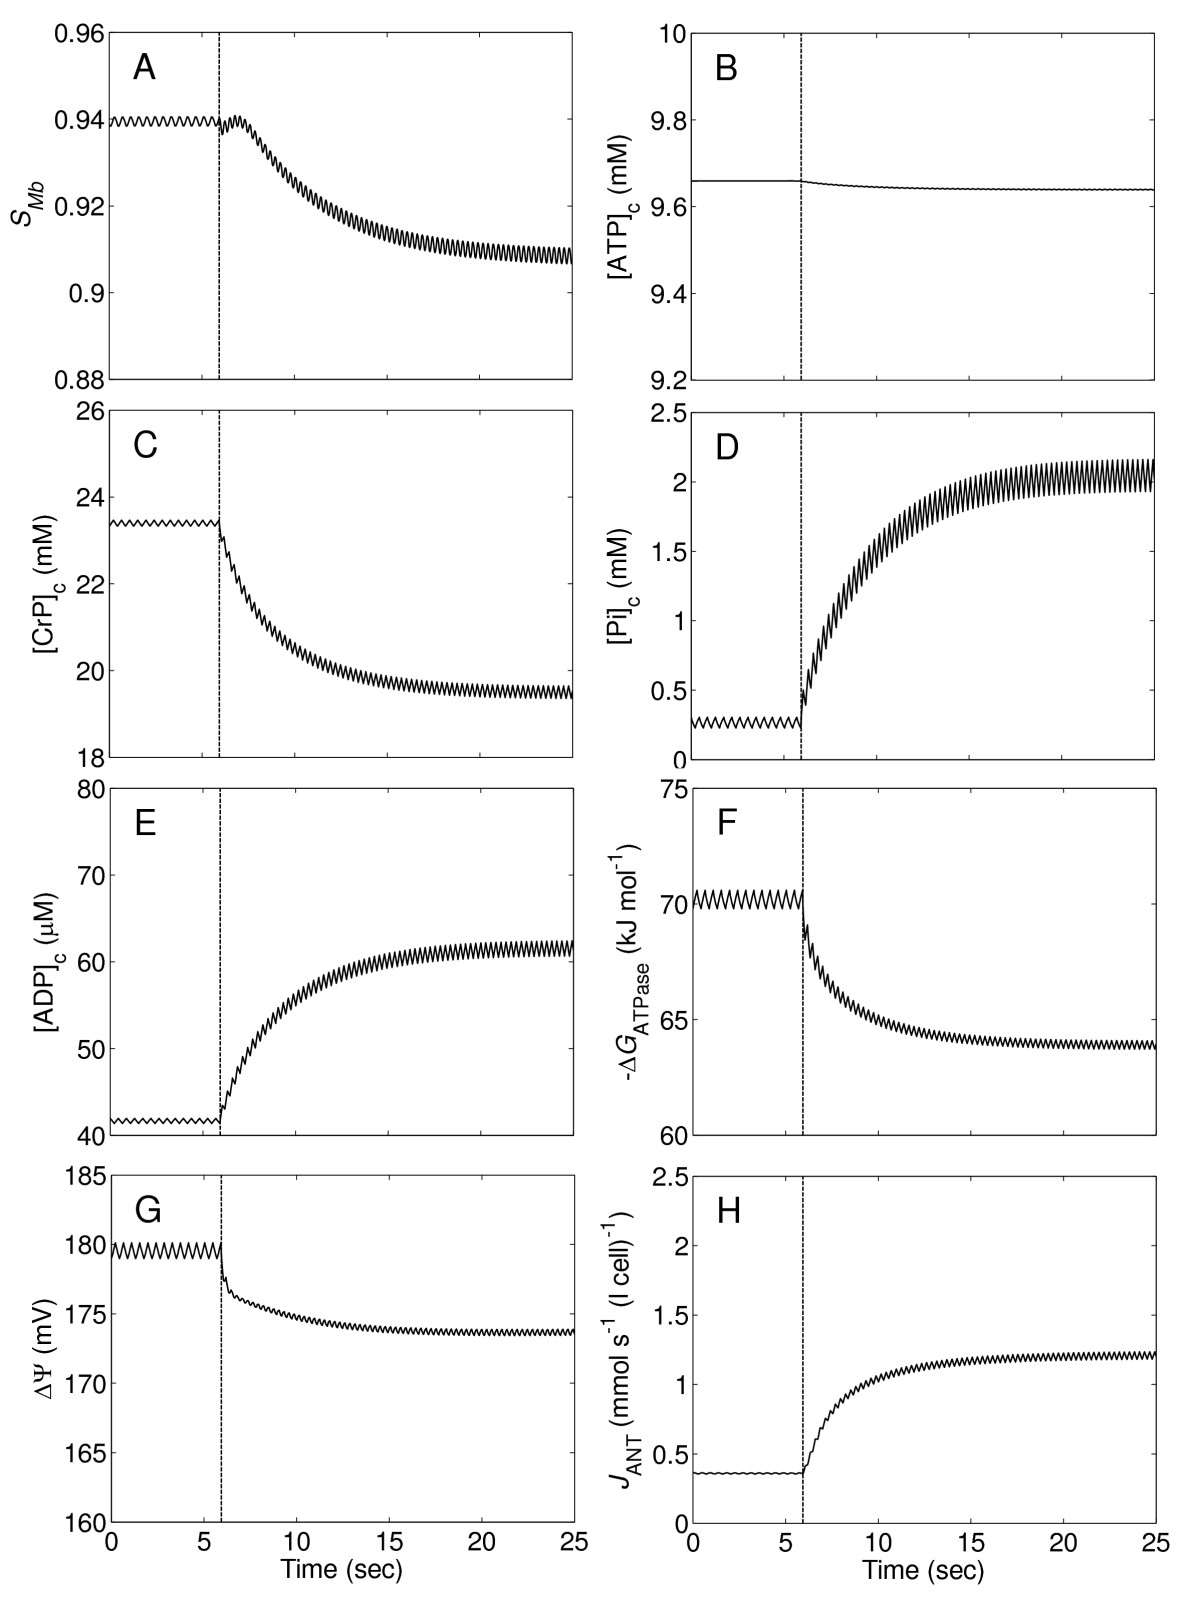 http://static-content.springer.com/image/art%3A10.1186%2F1752-0509-3-22/MediaObjects/12918_2008_Article_290_Fig4_HTML.jpg